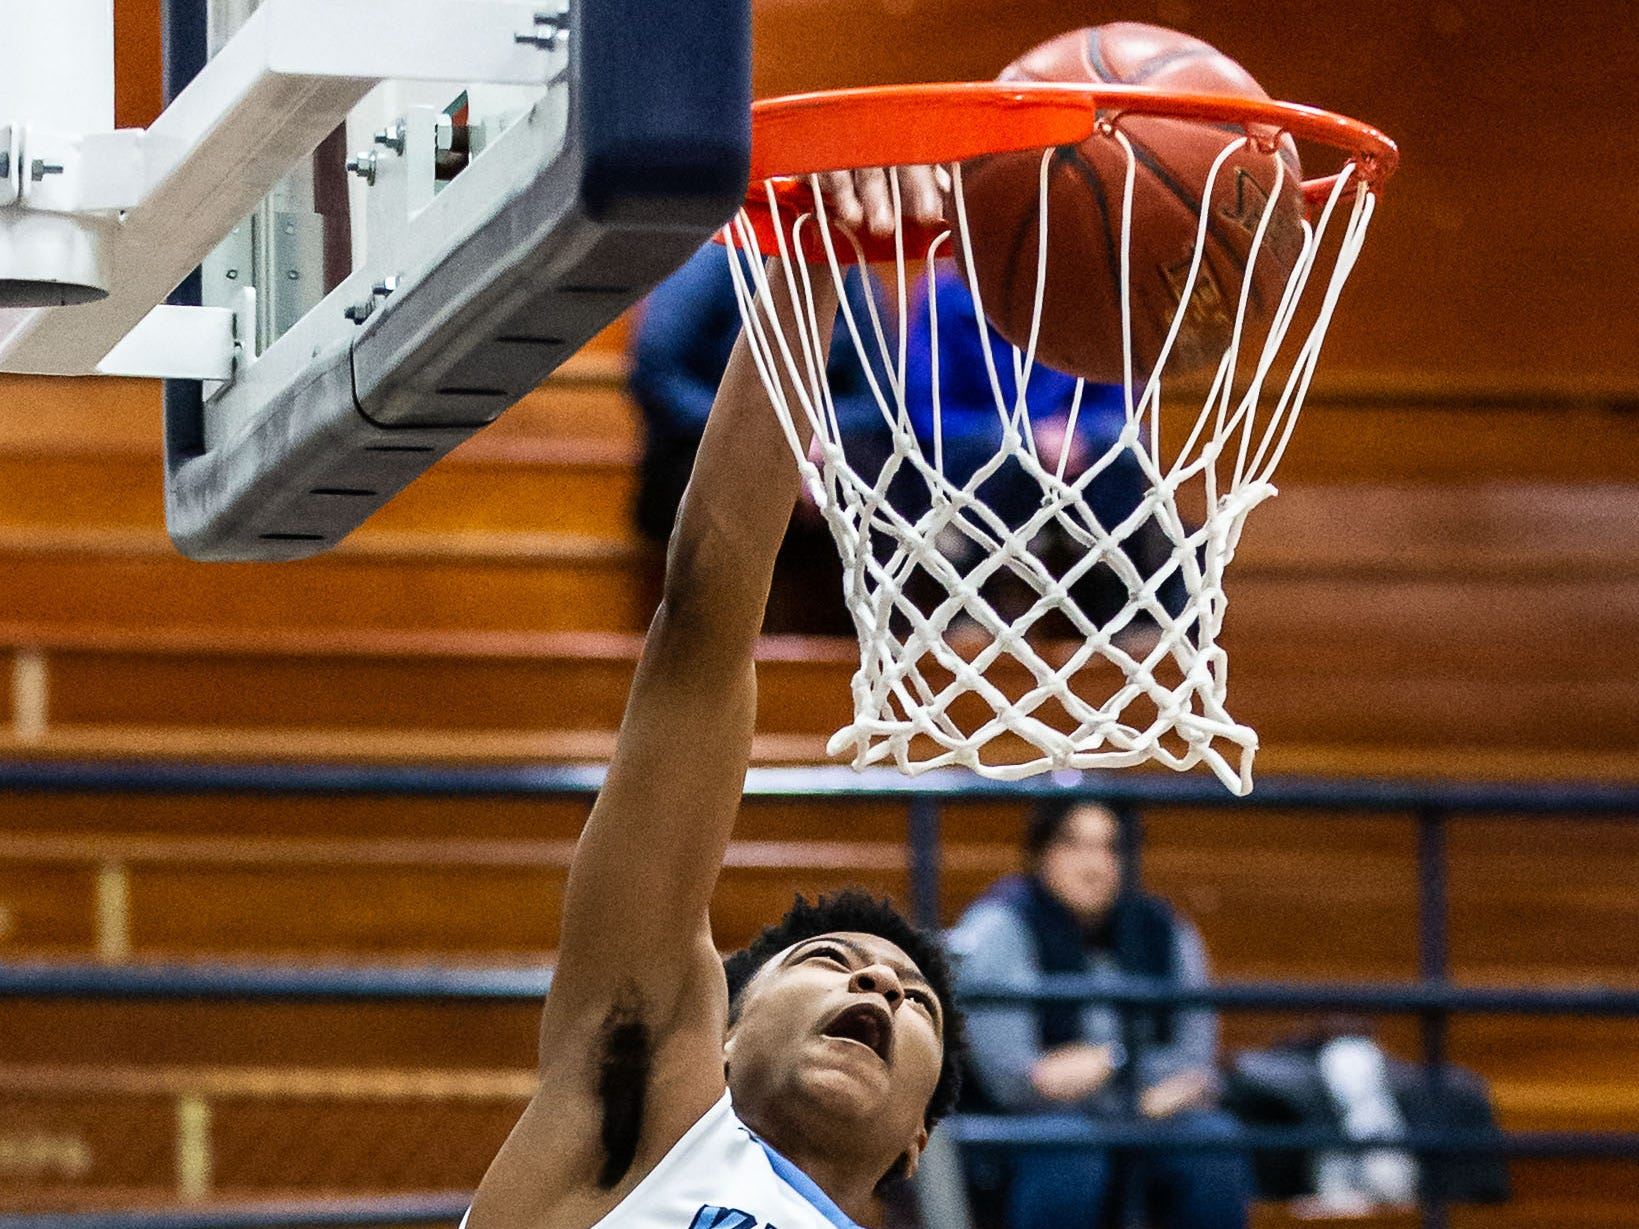 Nicolet's CJ Hayes (24) dunks one at home against Whitefish Bay on Monday, Feb. 18, 2019.